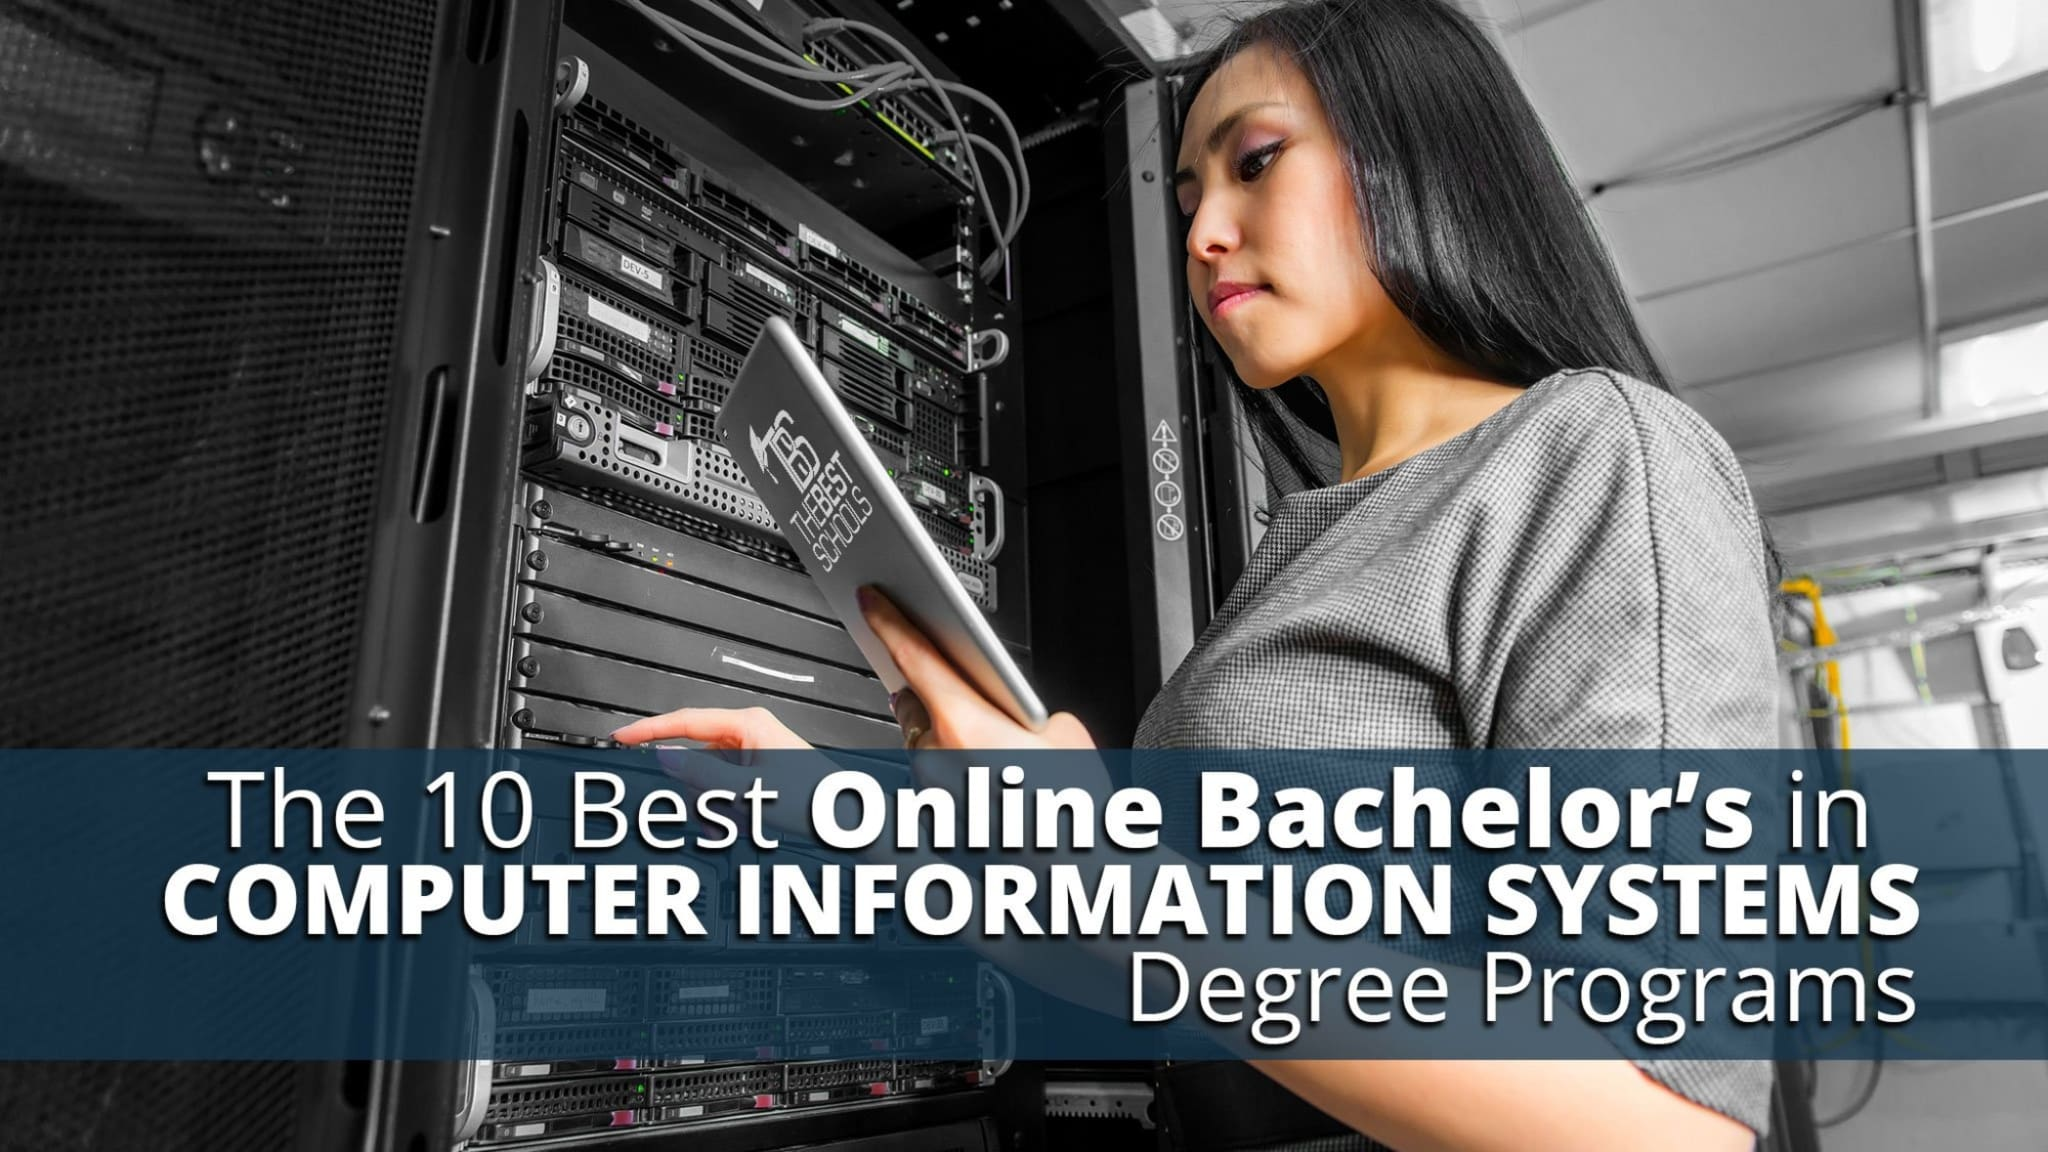 Technology Management Image: The 10 Best Online Bachelor's In Computer Information